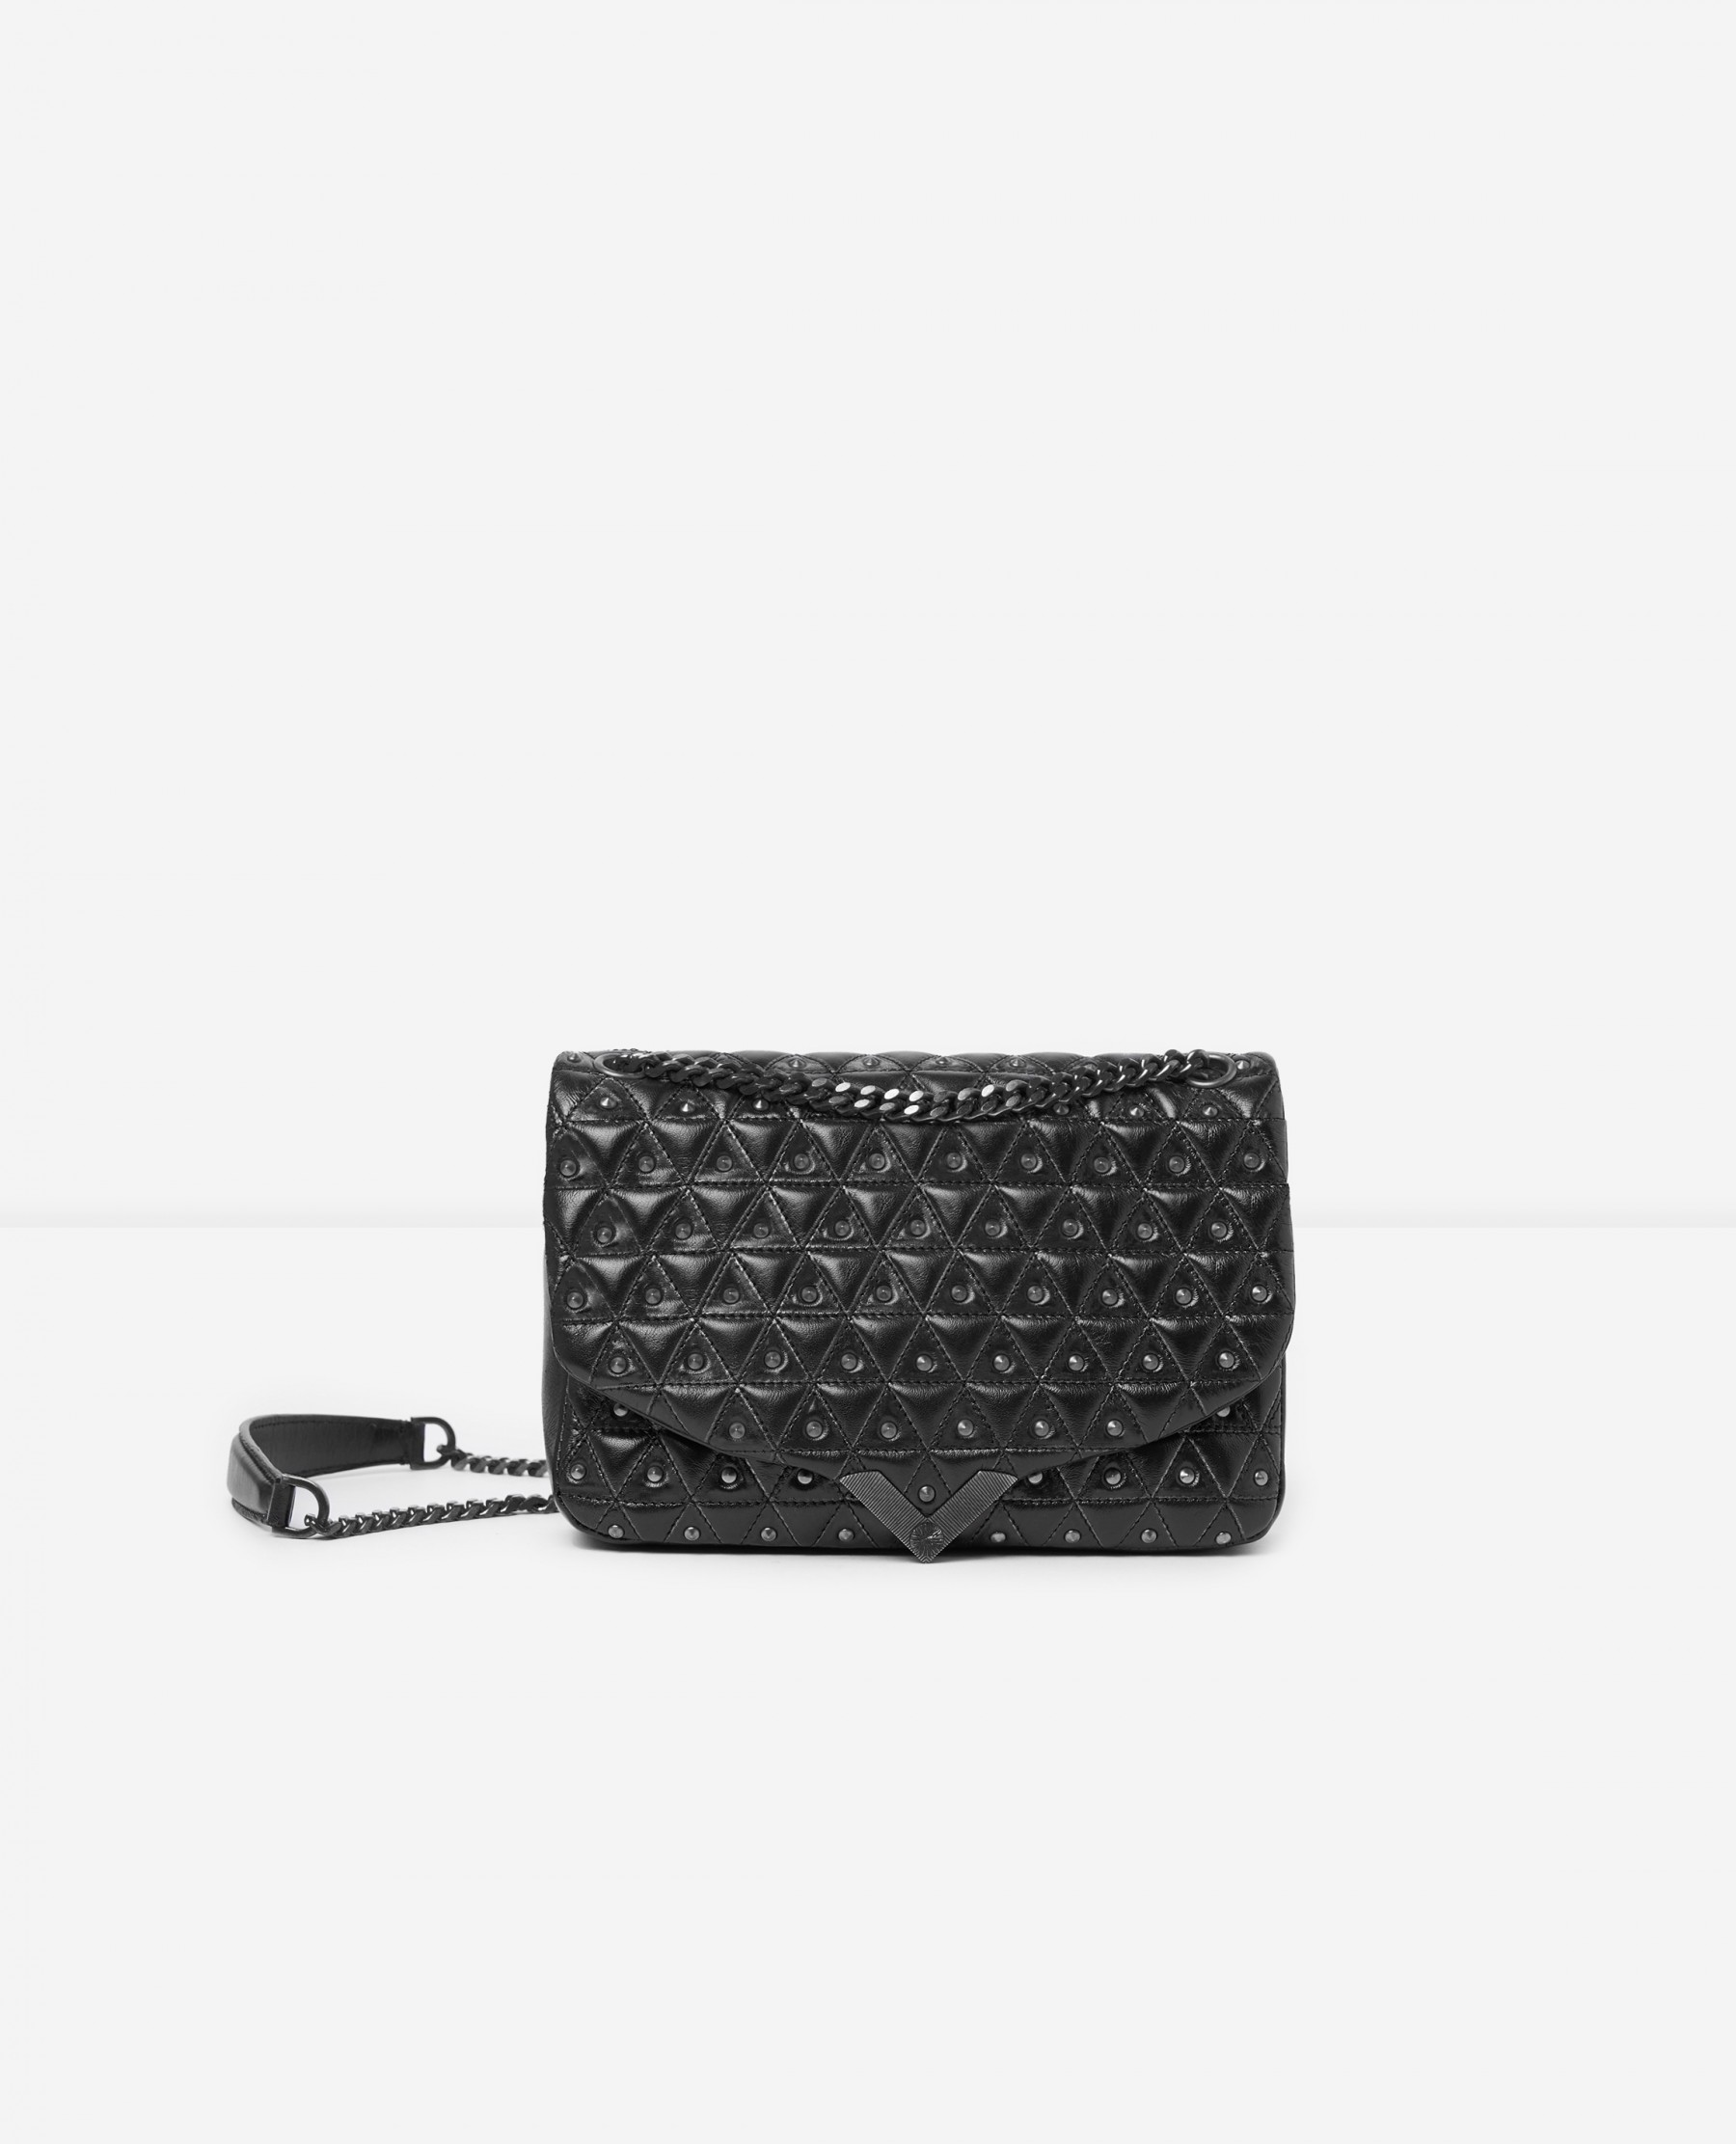 The Kooples Official Website - Medium black leather bag with silver studs Stella by The Kooples